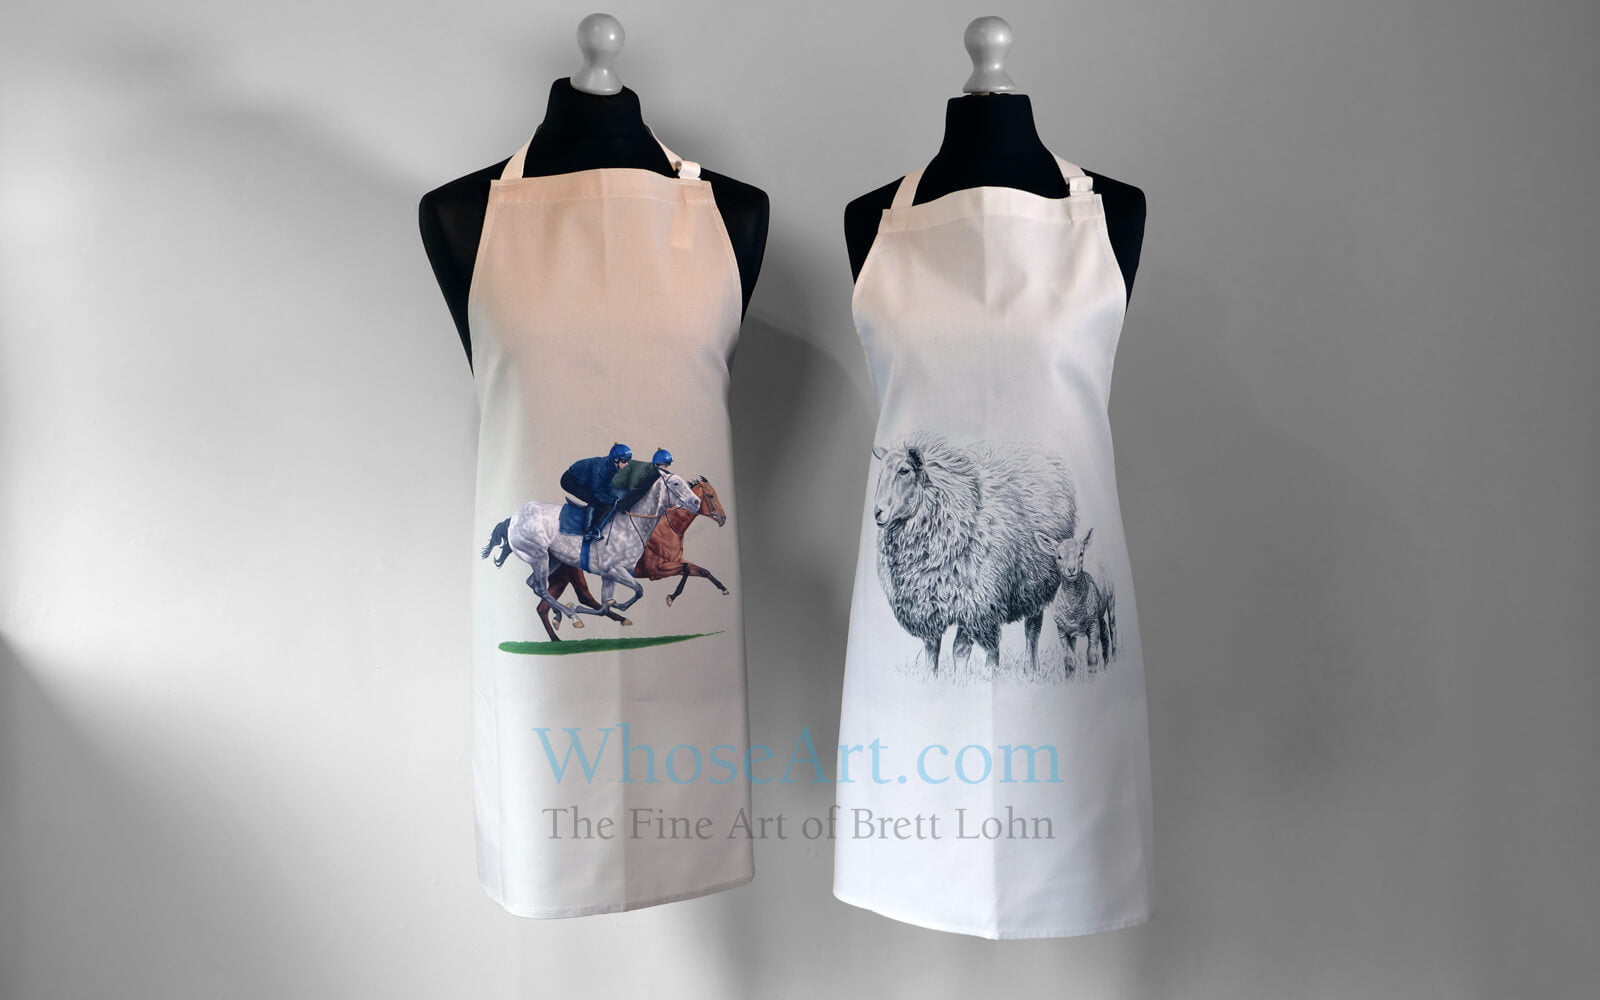 Whose Art apron collection